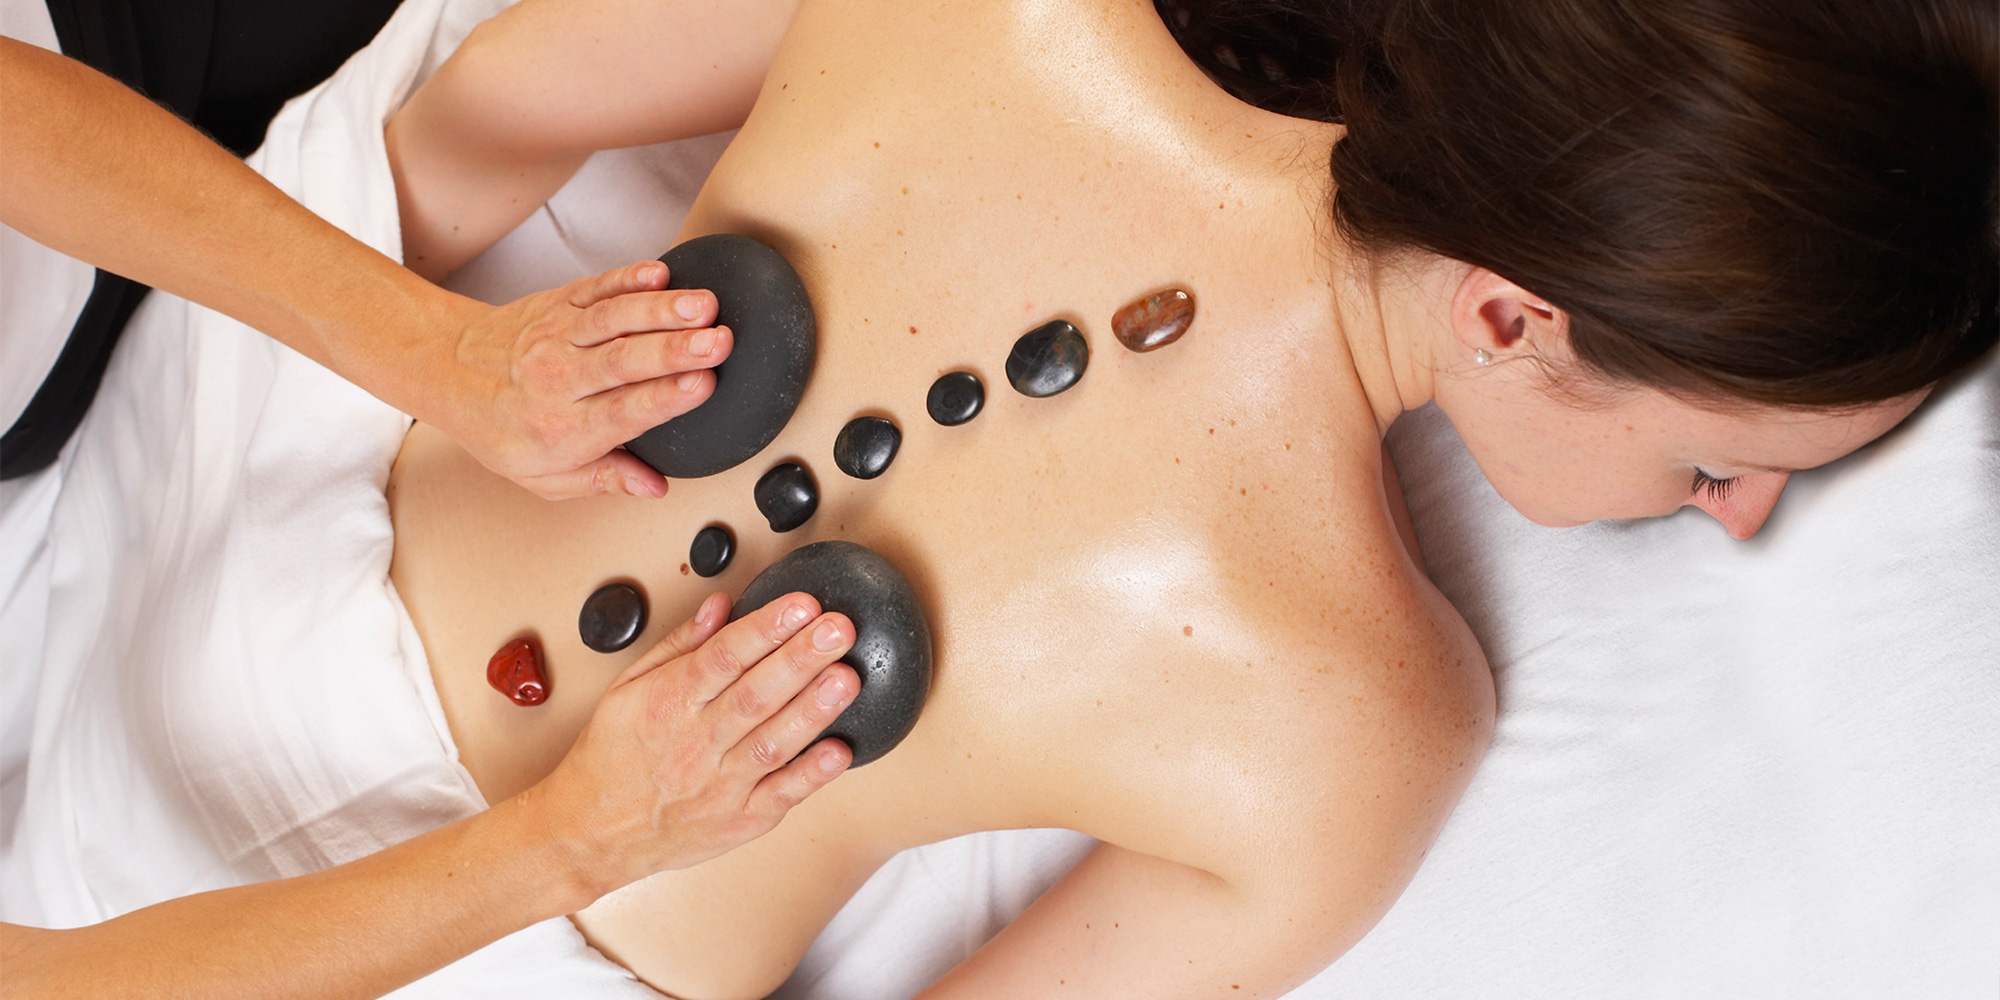 Tips When Trying San Diego Massage Services